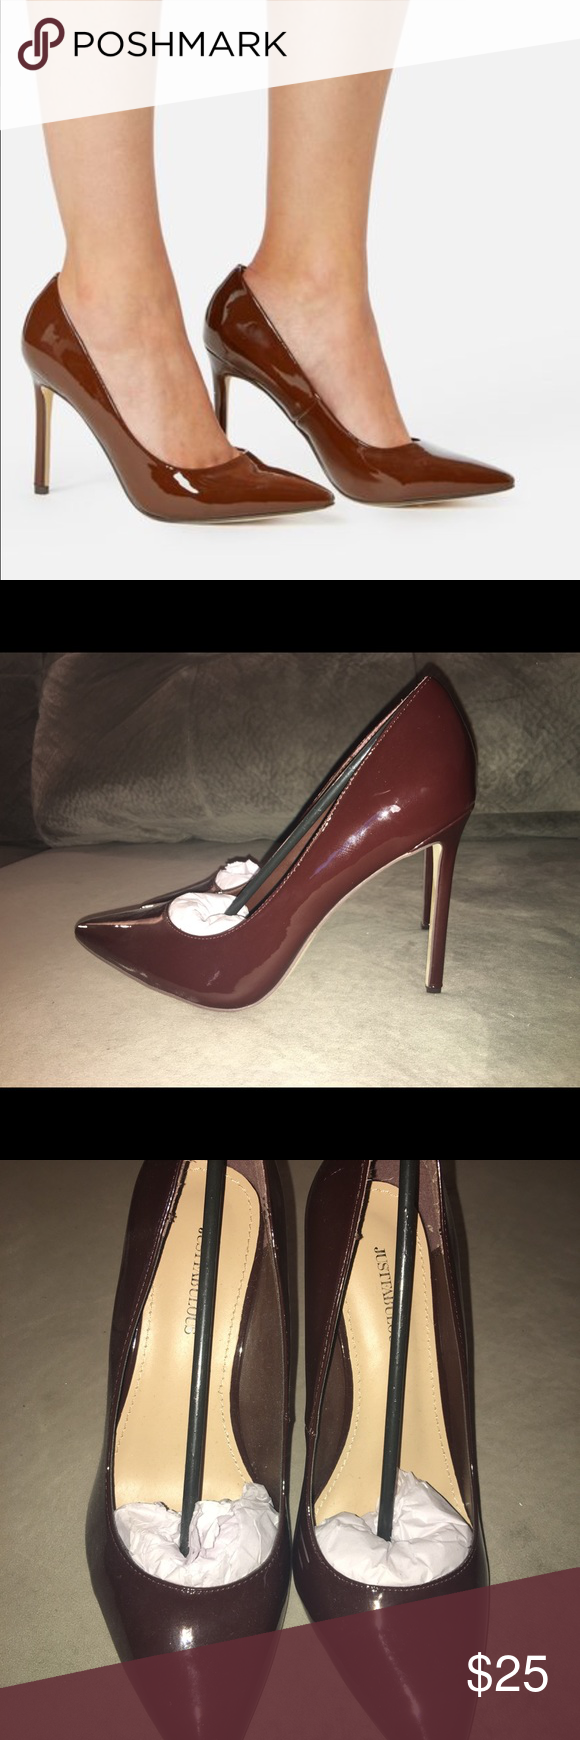 Espresso Lyssa Pump, chocolate Pump Brand New, Never Worn Out. Tried on at home, comes in original pink Just Fab box. JustFab Shoes Heels #espressoathome Espresso Lyssa Pump, chocolate Pump Brand New, Never Worn Out. Tried on at home, comes in original pink Just Fab box. JustFab Shoes Heels #espressoathome Espresso Lyssa Pump, chocolate Pump Brand New, Never Worn Out. Tried on at home, comes in original pink Just Fab box. JustFab Shoes Heels #espressoathome Espresso Lyssa Pump, chocolate Pump Br #espressoathome